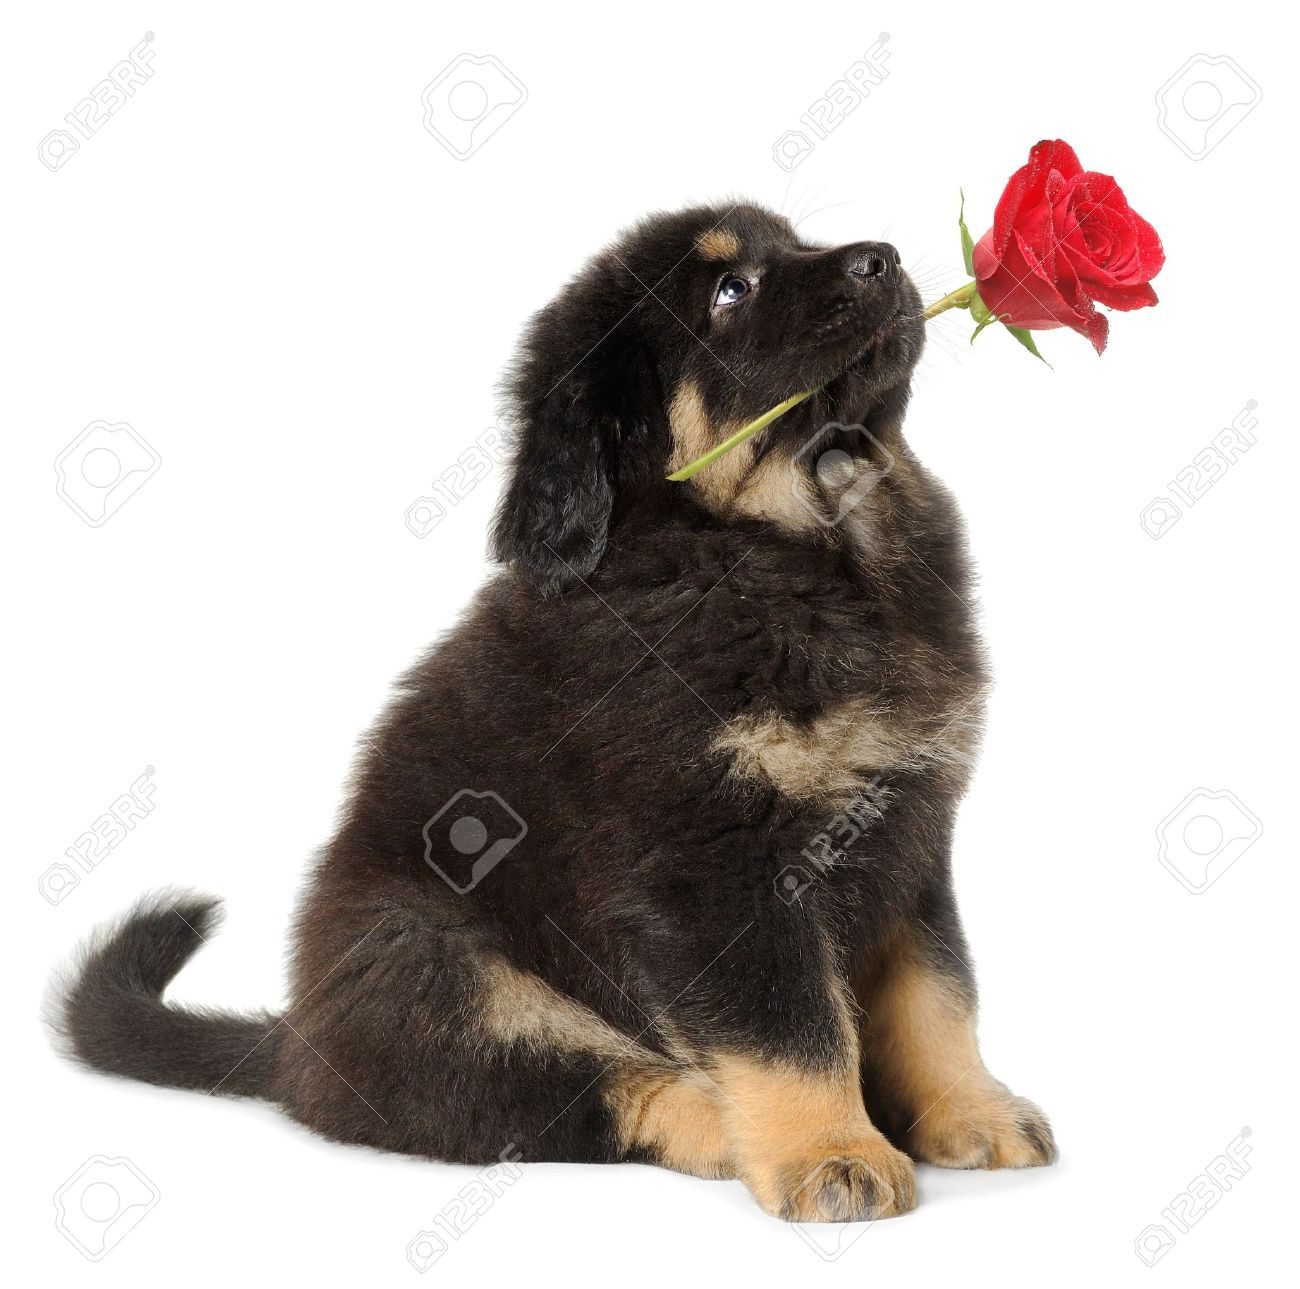 Puppy dog holding red rose in its mouth, looking up, isolated on white Stock Photo - 7717368